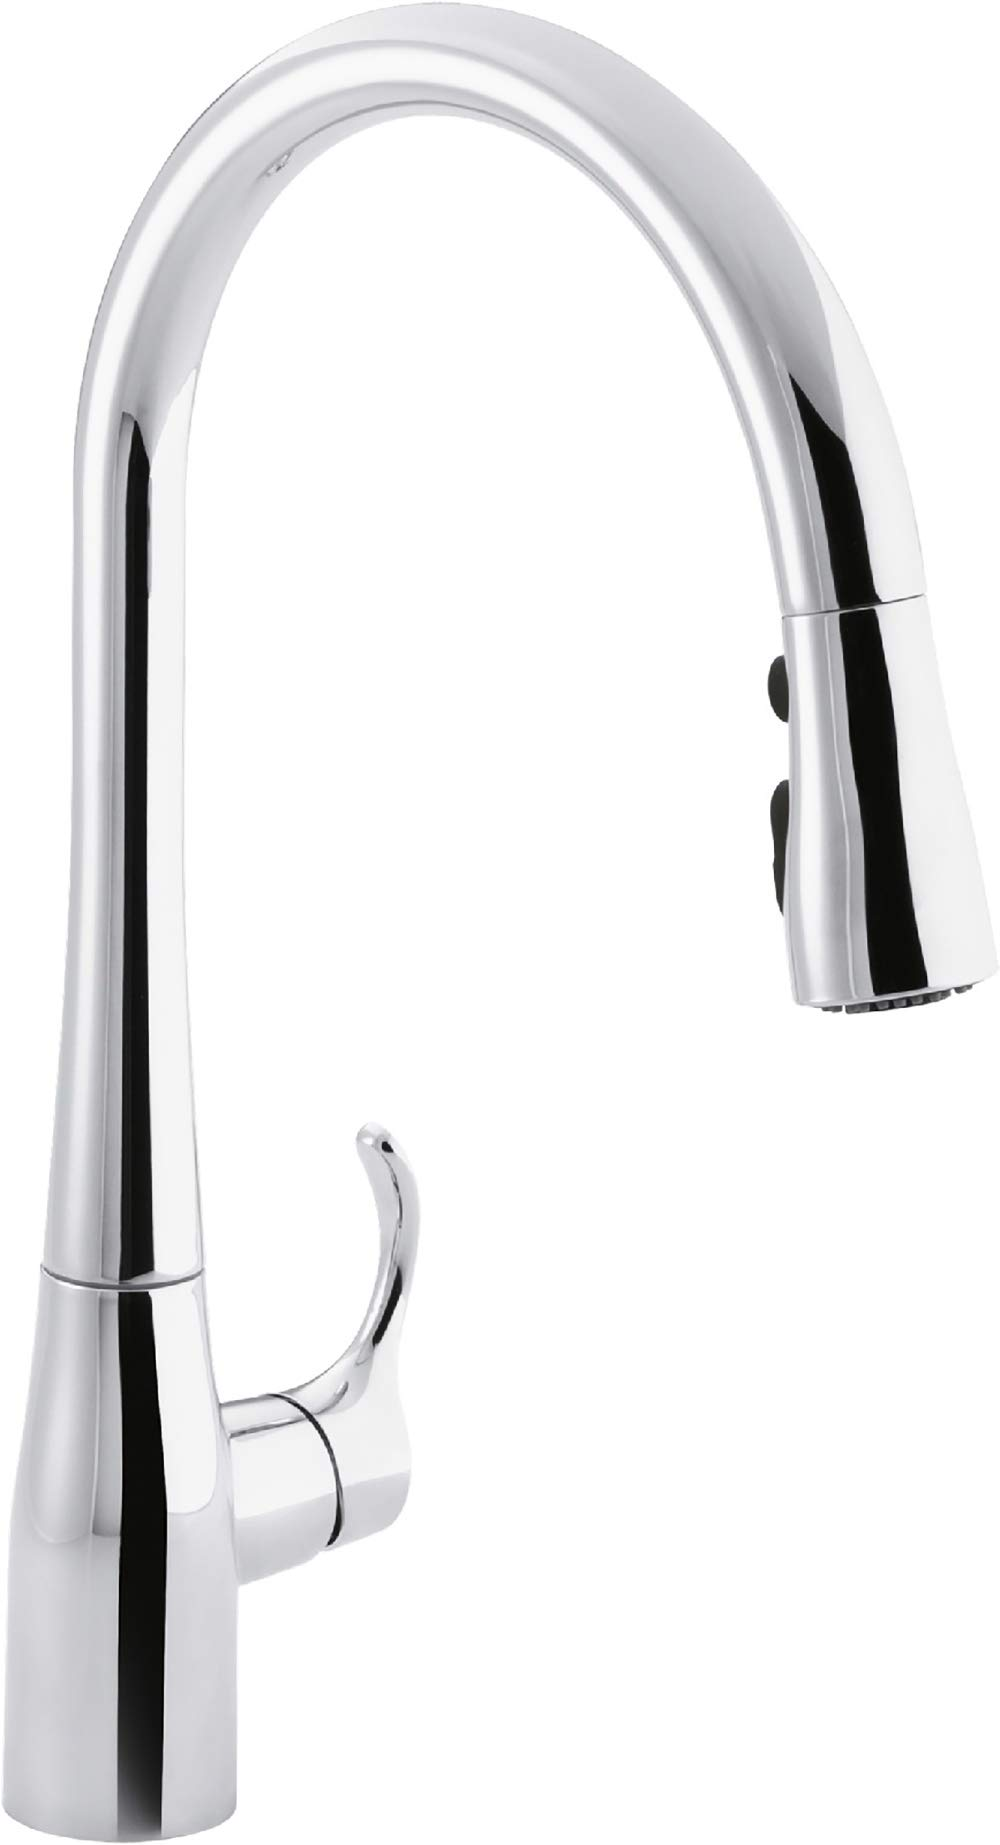 KOHLER K-596-CP Simplice High-Arch Single-Hole or Three-Hole, Single Handle, Pull-Down Sprayer Kitchen Faucet, Polished Chrome with 3-function Spray Head, Sweep Spray and Docking Spray Head Technology